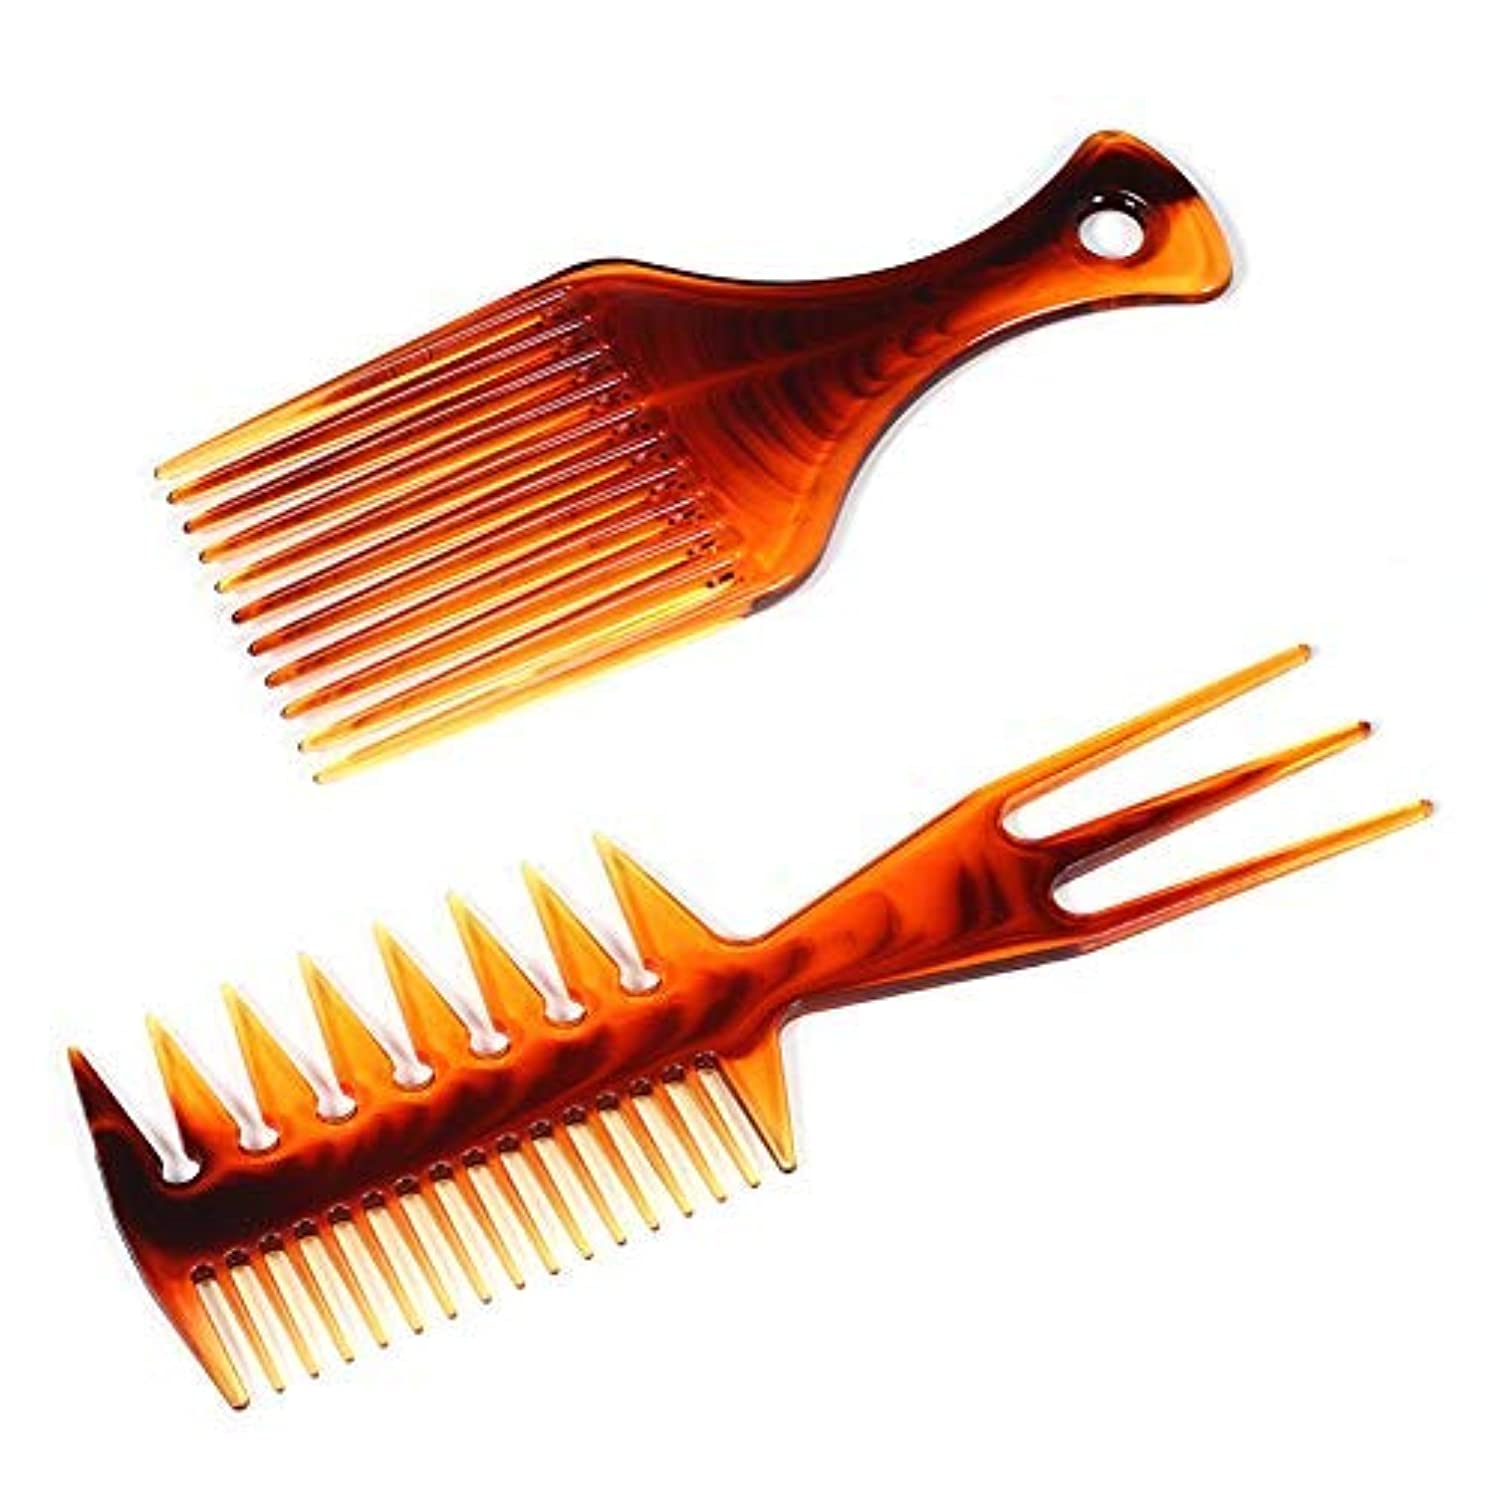 消える七面鳥ハシー2 Pieces Afro Pick Comb Fish Comb Afro Comb Hair Pick Comb Hair Styling Afro Hair Lift Pick Comb infused with Argan Oil Olive Oil and Keratin for Men and Women [並行輸入品]